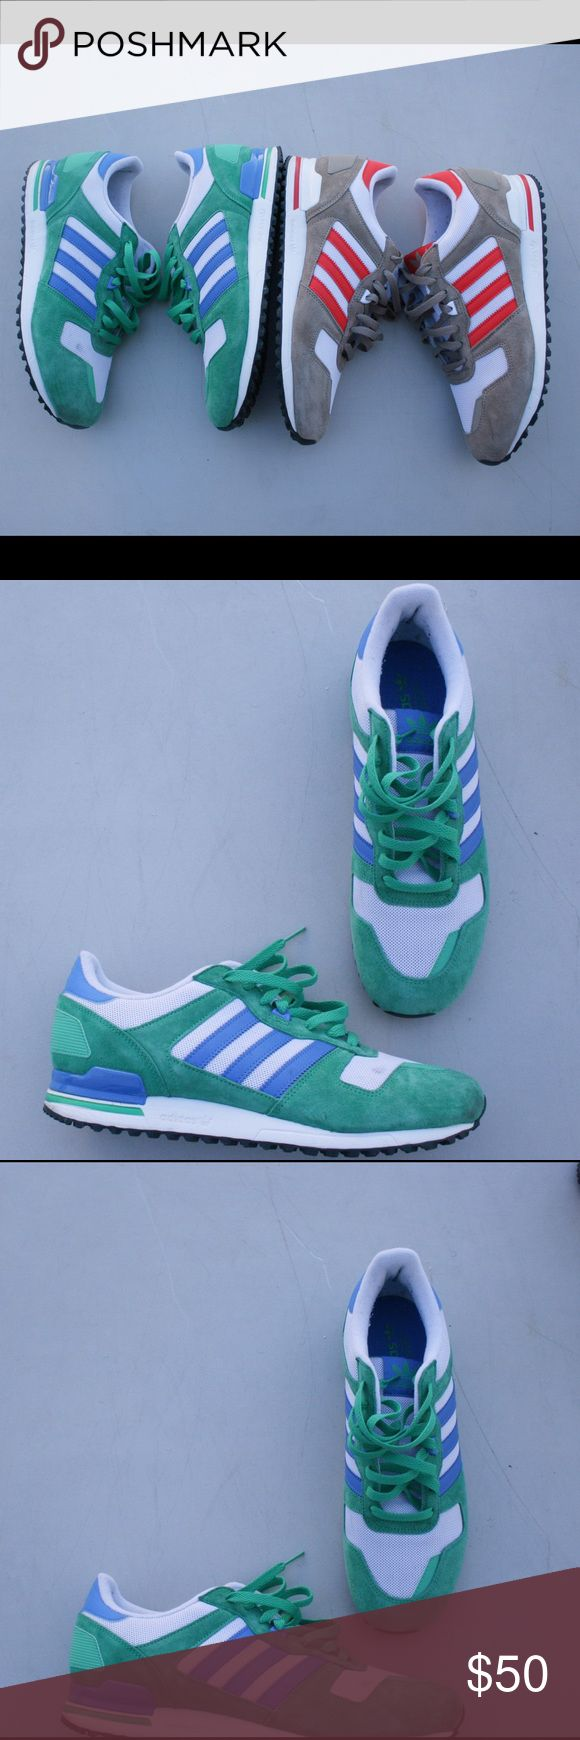 Adidas ZX 700 sneakers 100% Authentic 9/10 condition Adidas Shoes Sneakers